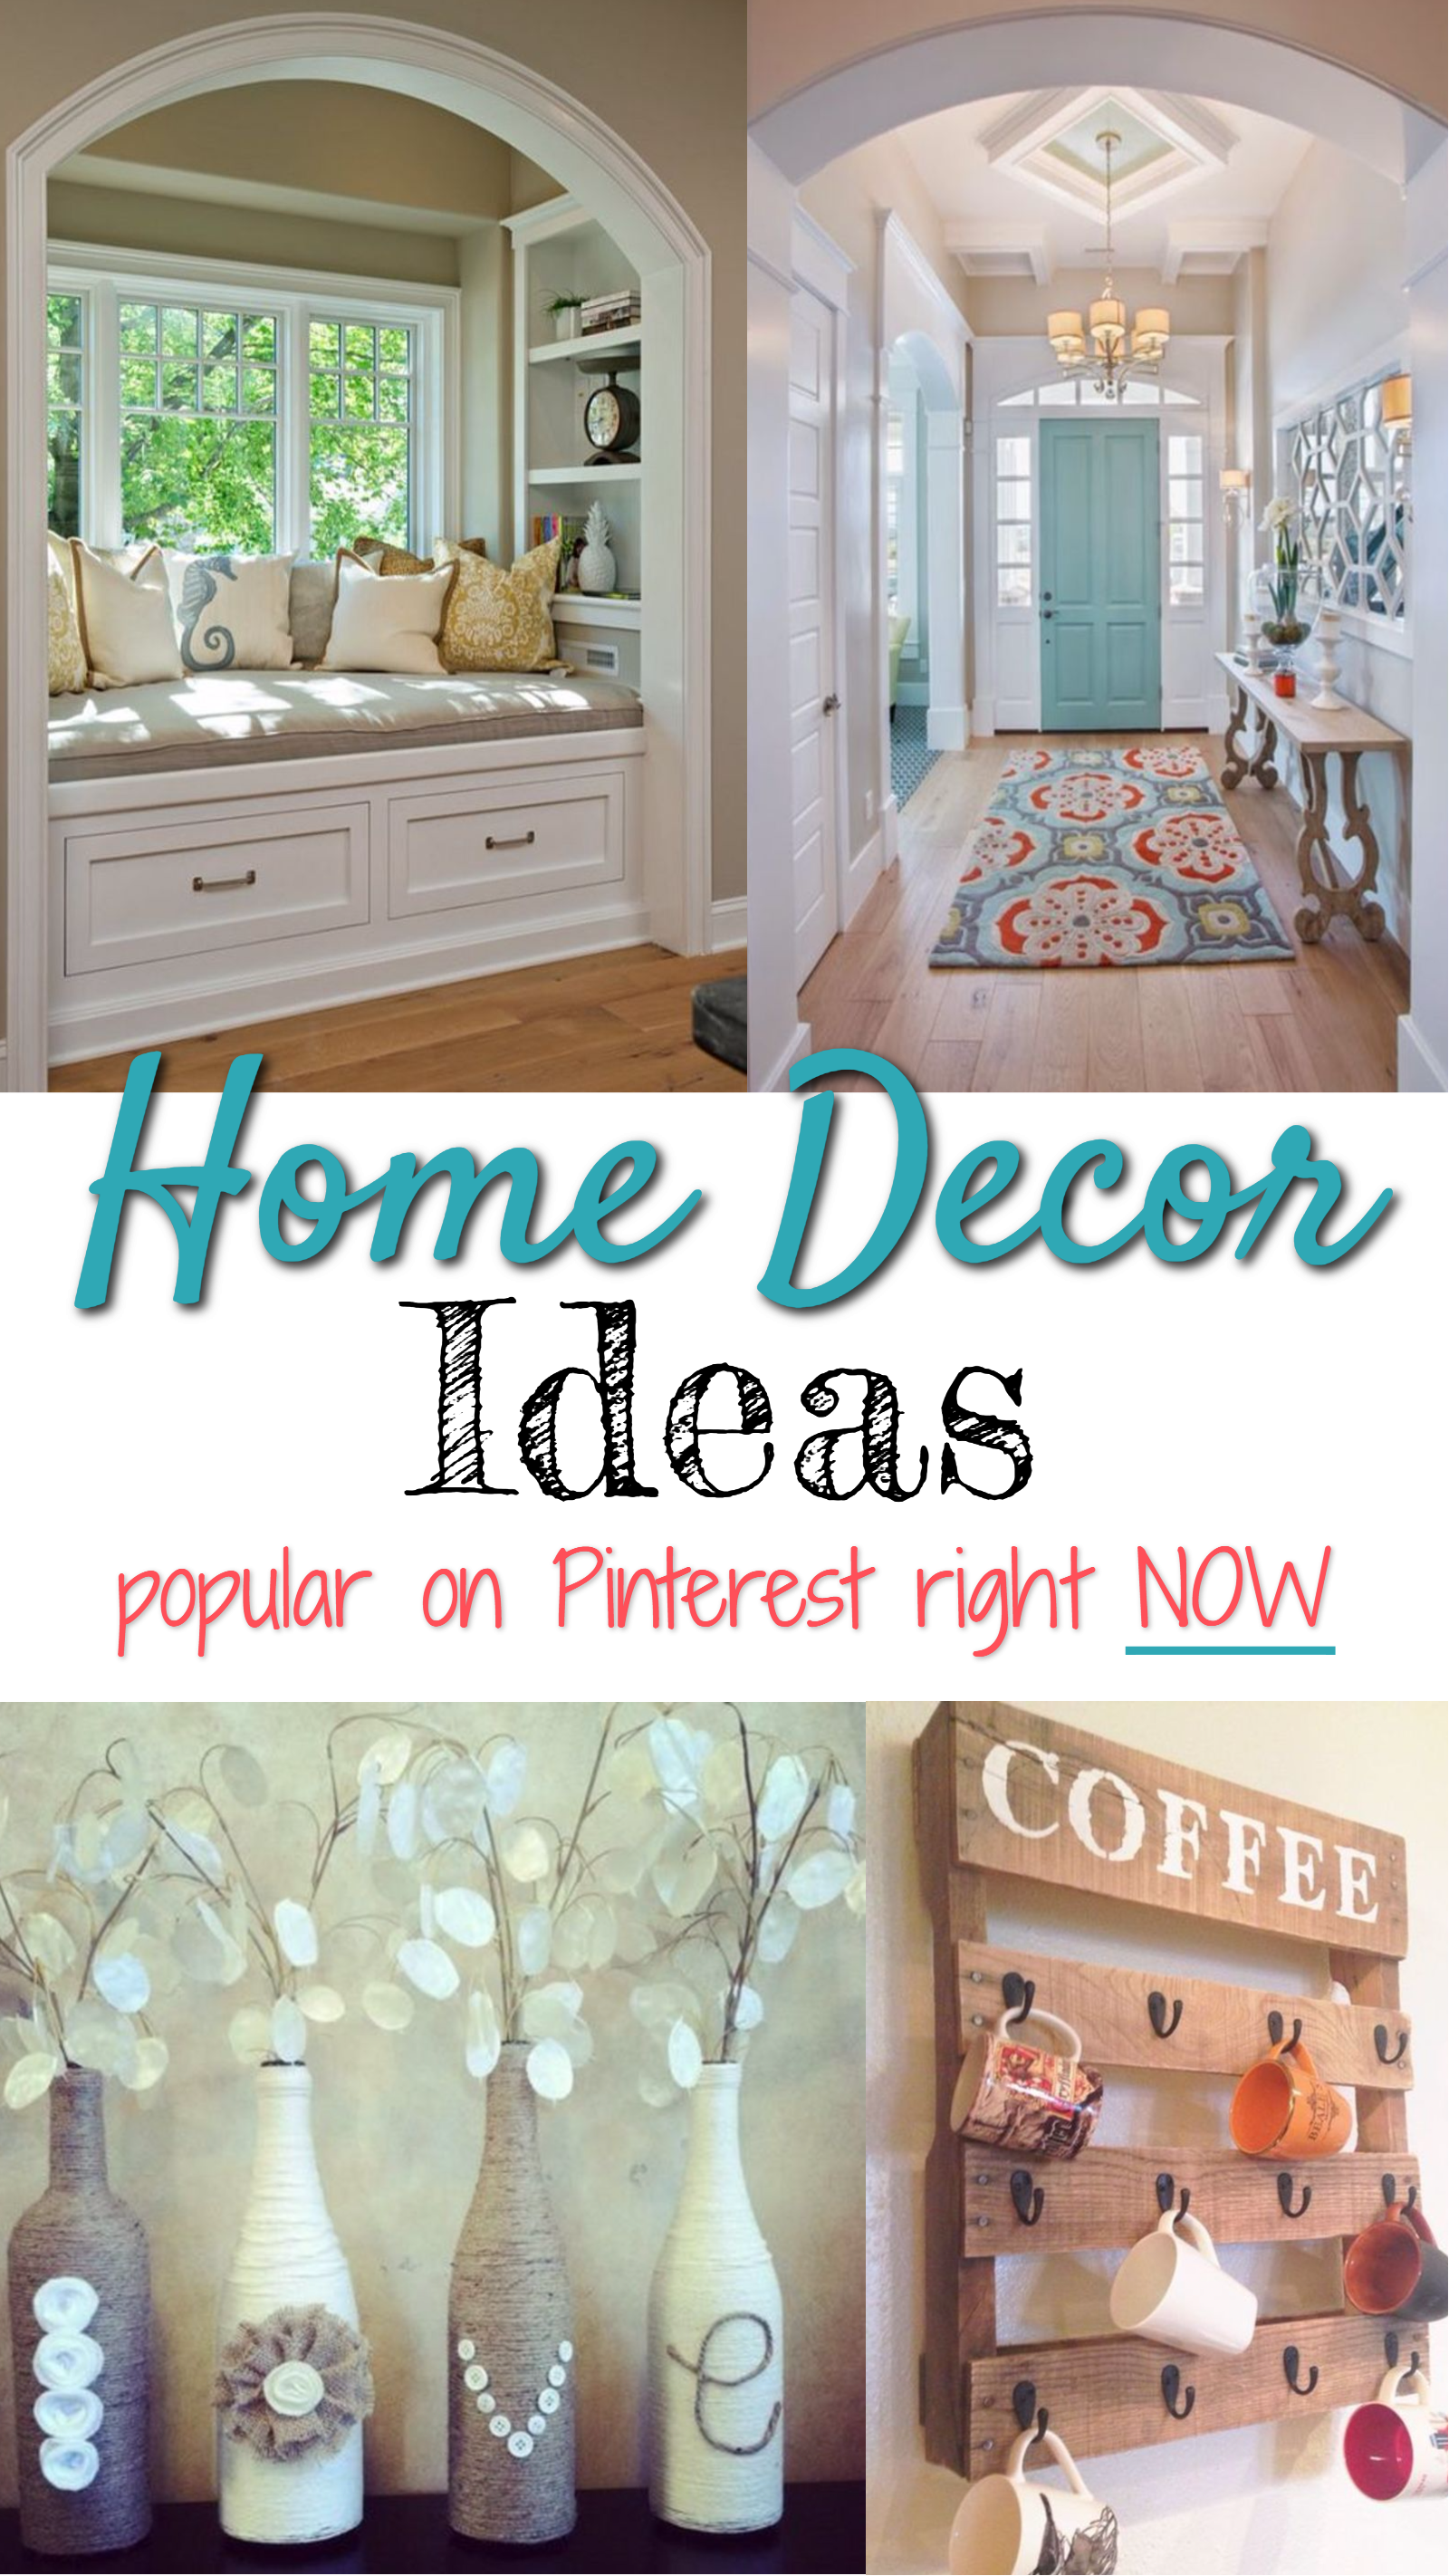 Pinterest Blog Ideas Trending Viral On Pinterest Today Home Decorators Catalog Best Ideas of Home Decor and Design [homedecoratorscatalog.us]